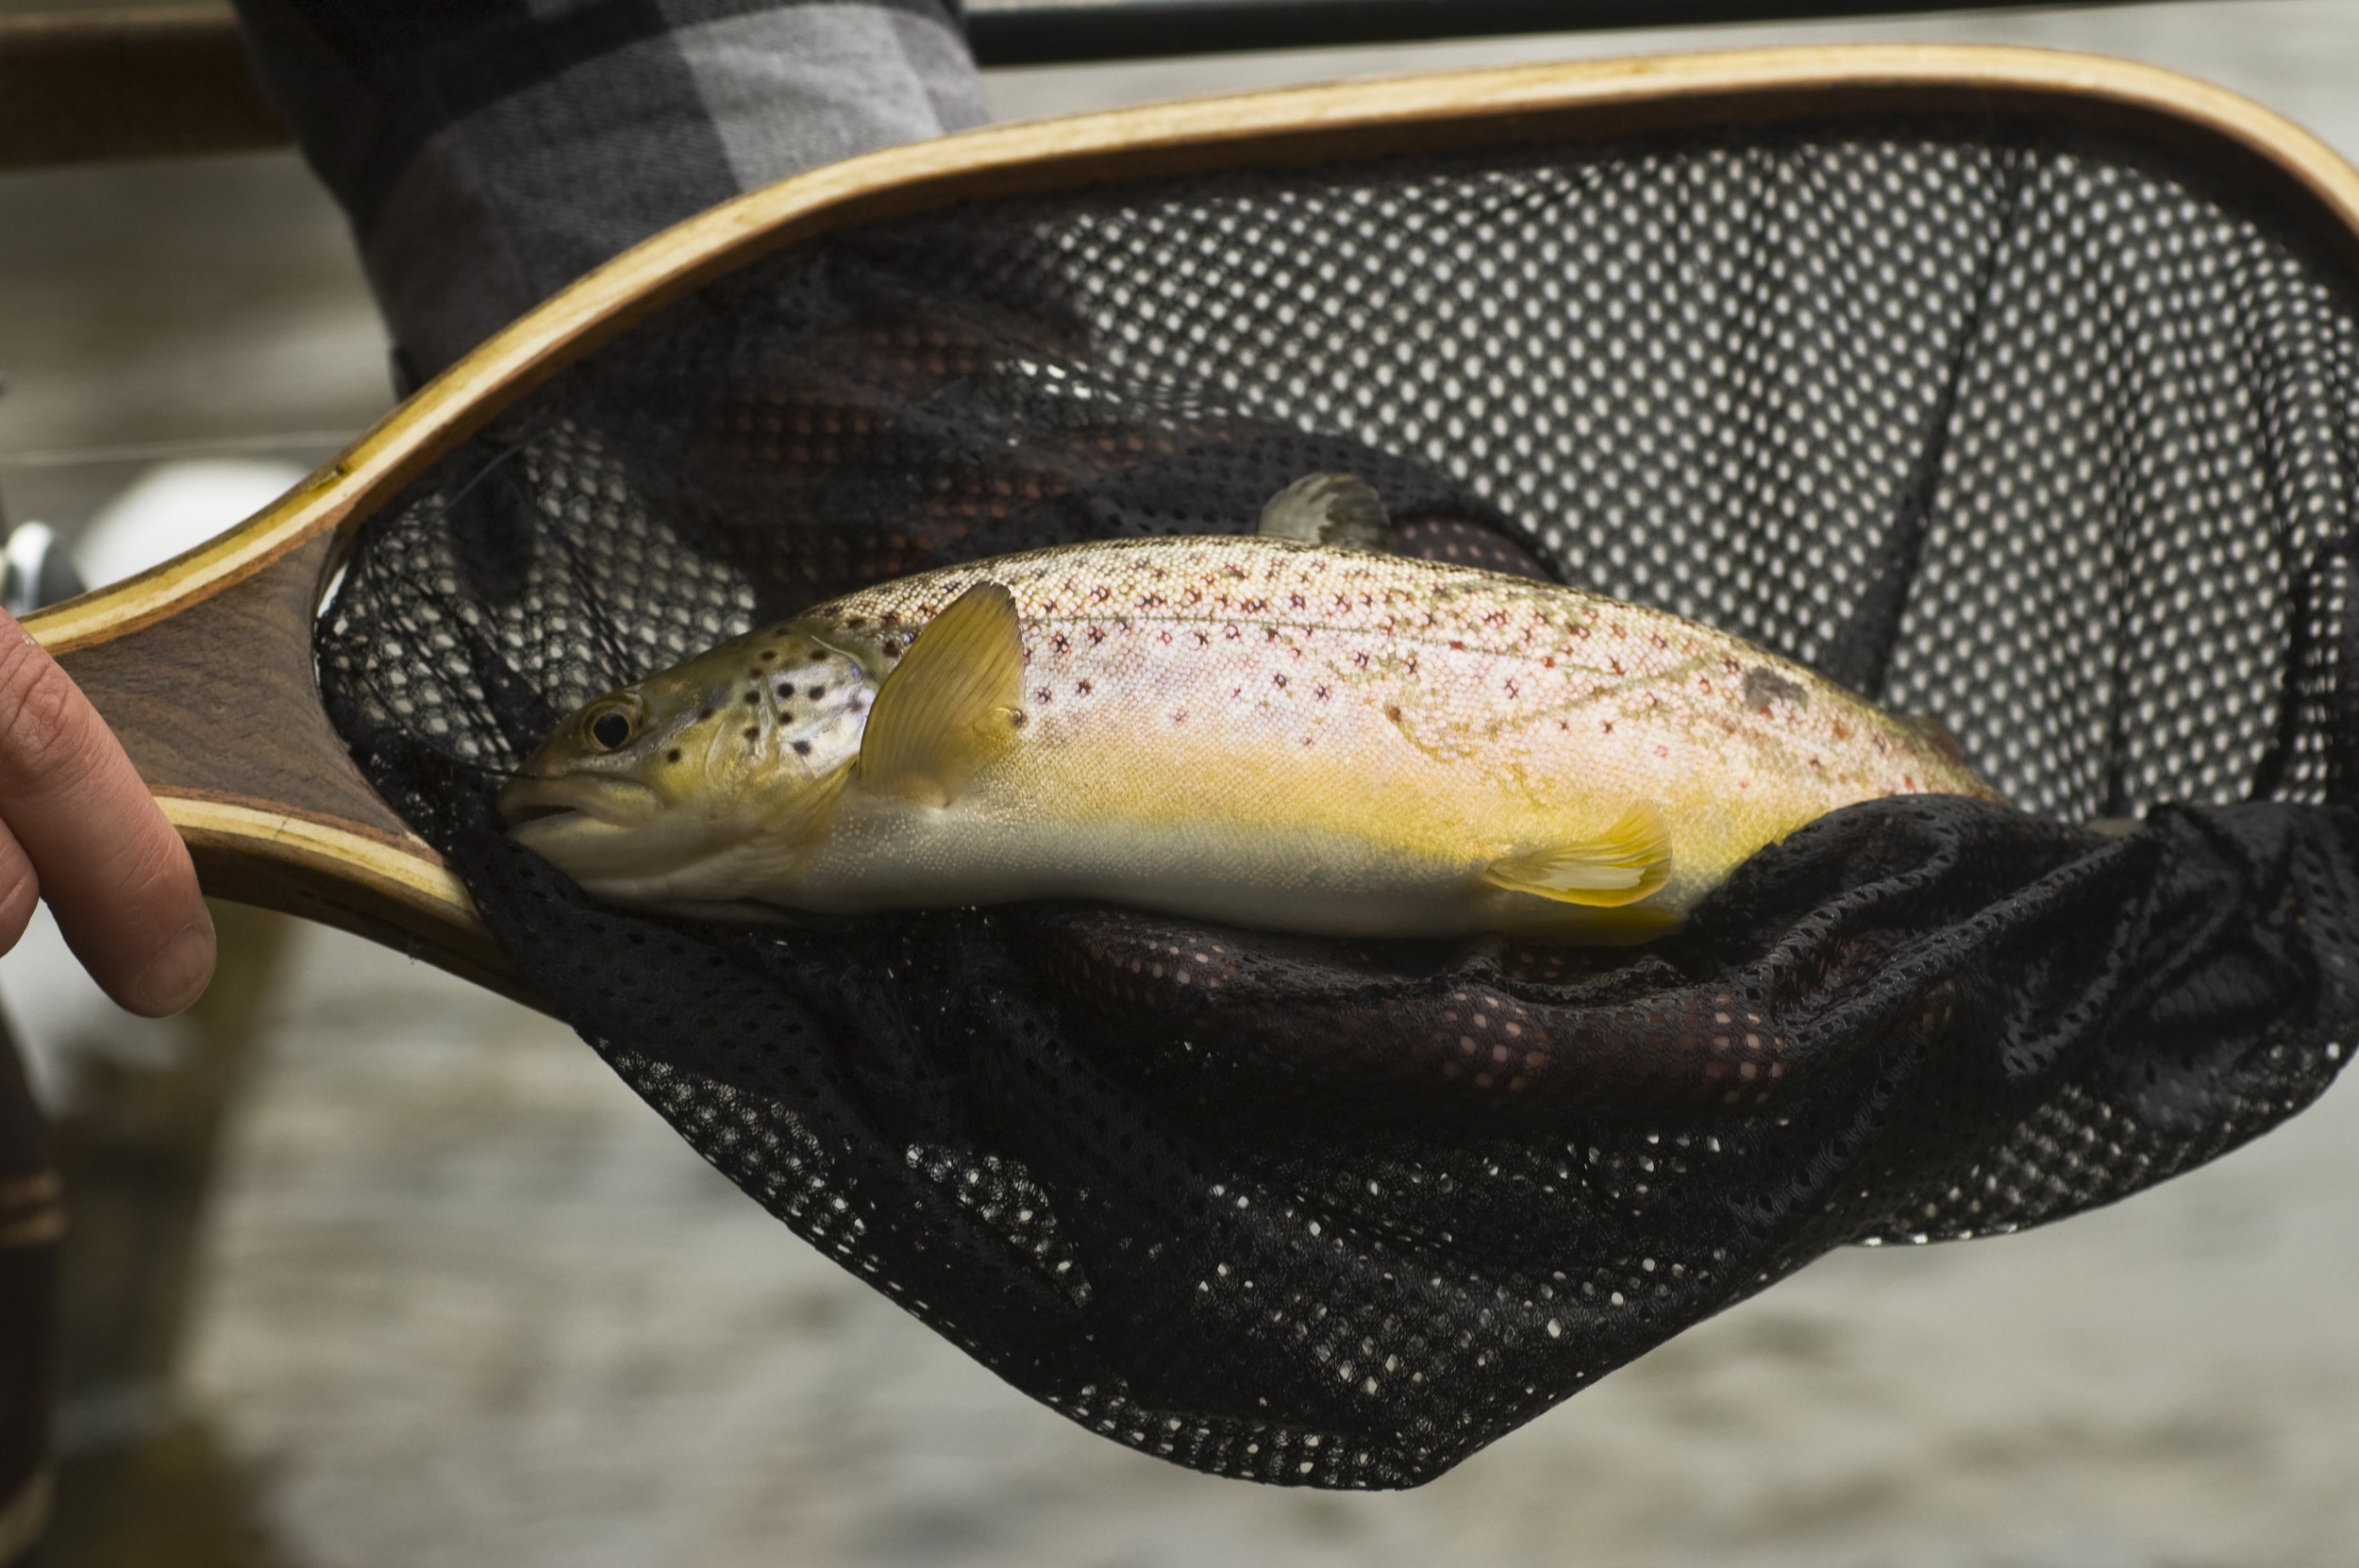 Colorado's fly fishing is a world famous destination sport. Knowing whether you need a license and what kind of license to buy can help you avoid getting a Colorado Fishing Violation while enjoying the one of a kind opportunity in the many streams, rivers and lakes open to fishing. If you do receive a fishing ticket, it is important to speak with an  attorney knowledgeable about fish and game laws as well as criminal defense in Colorado .